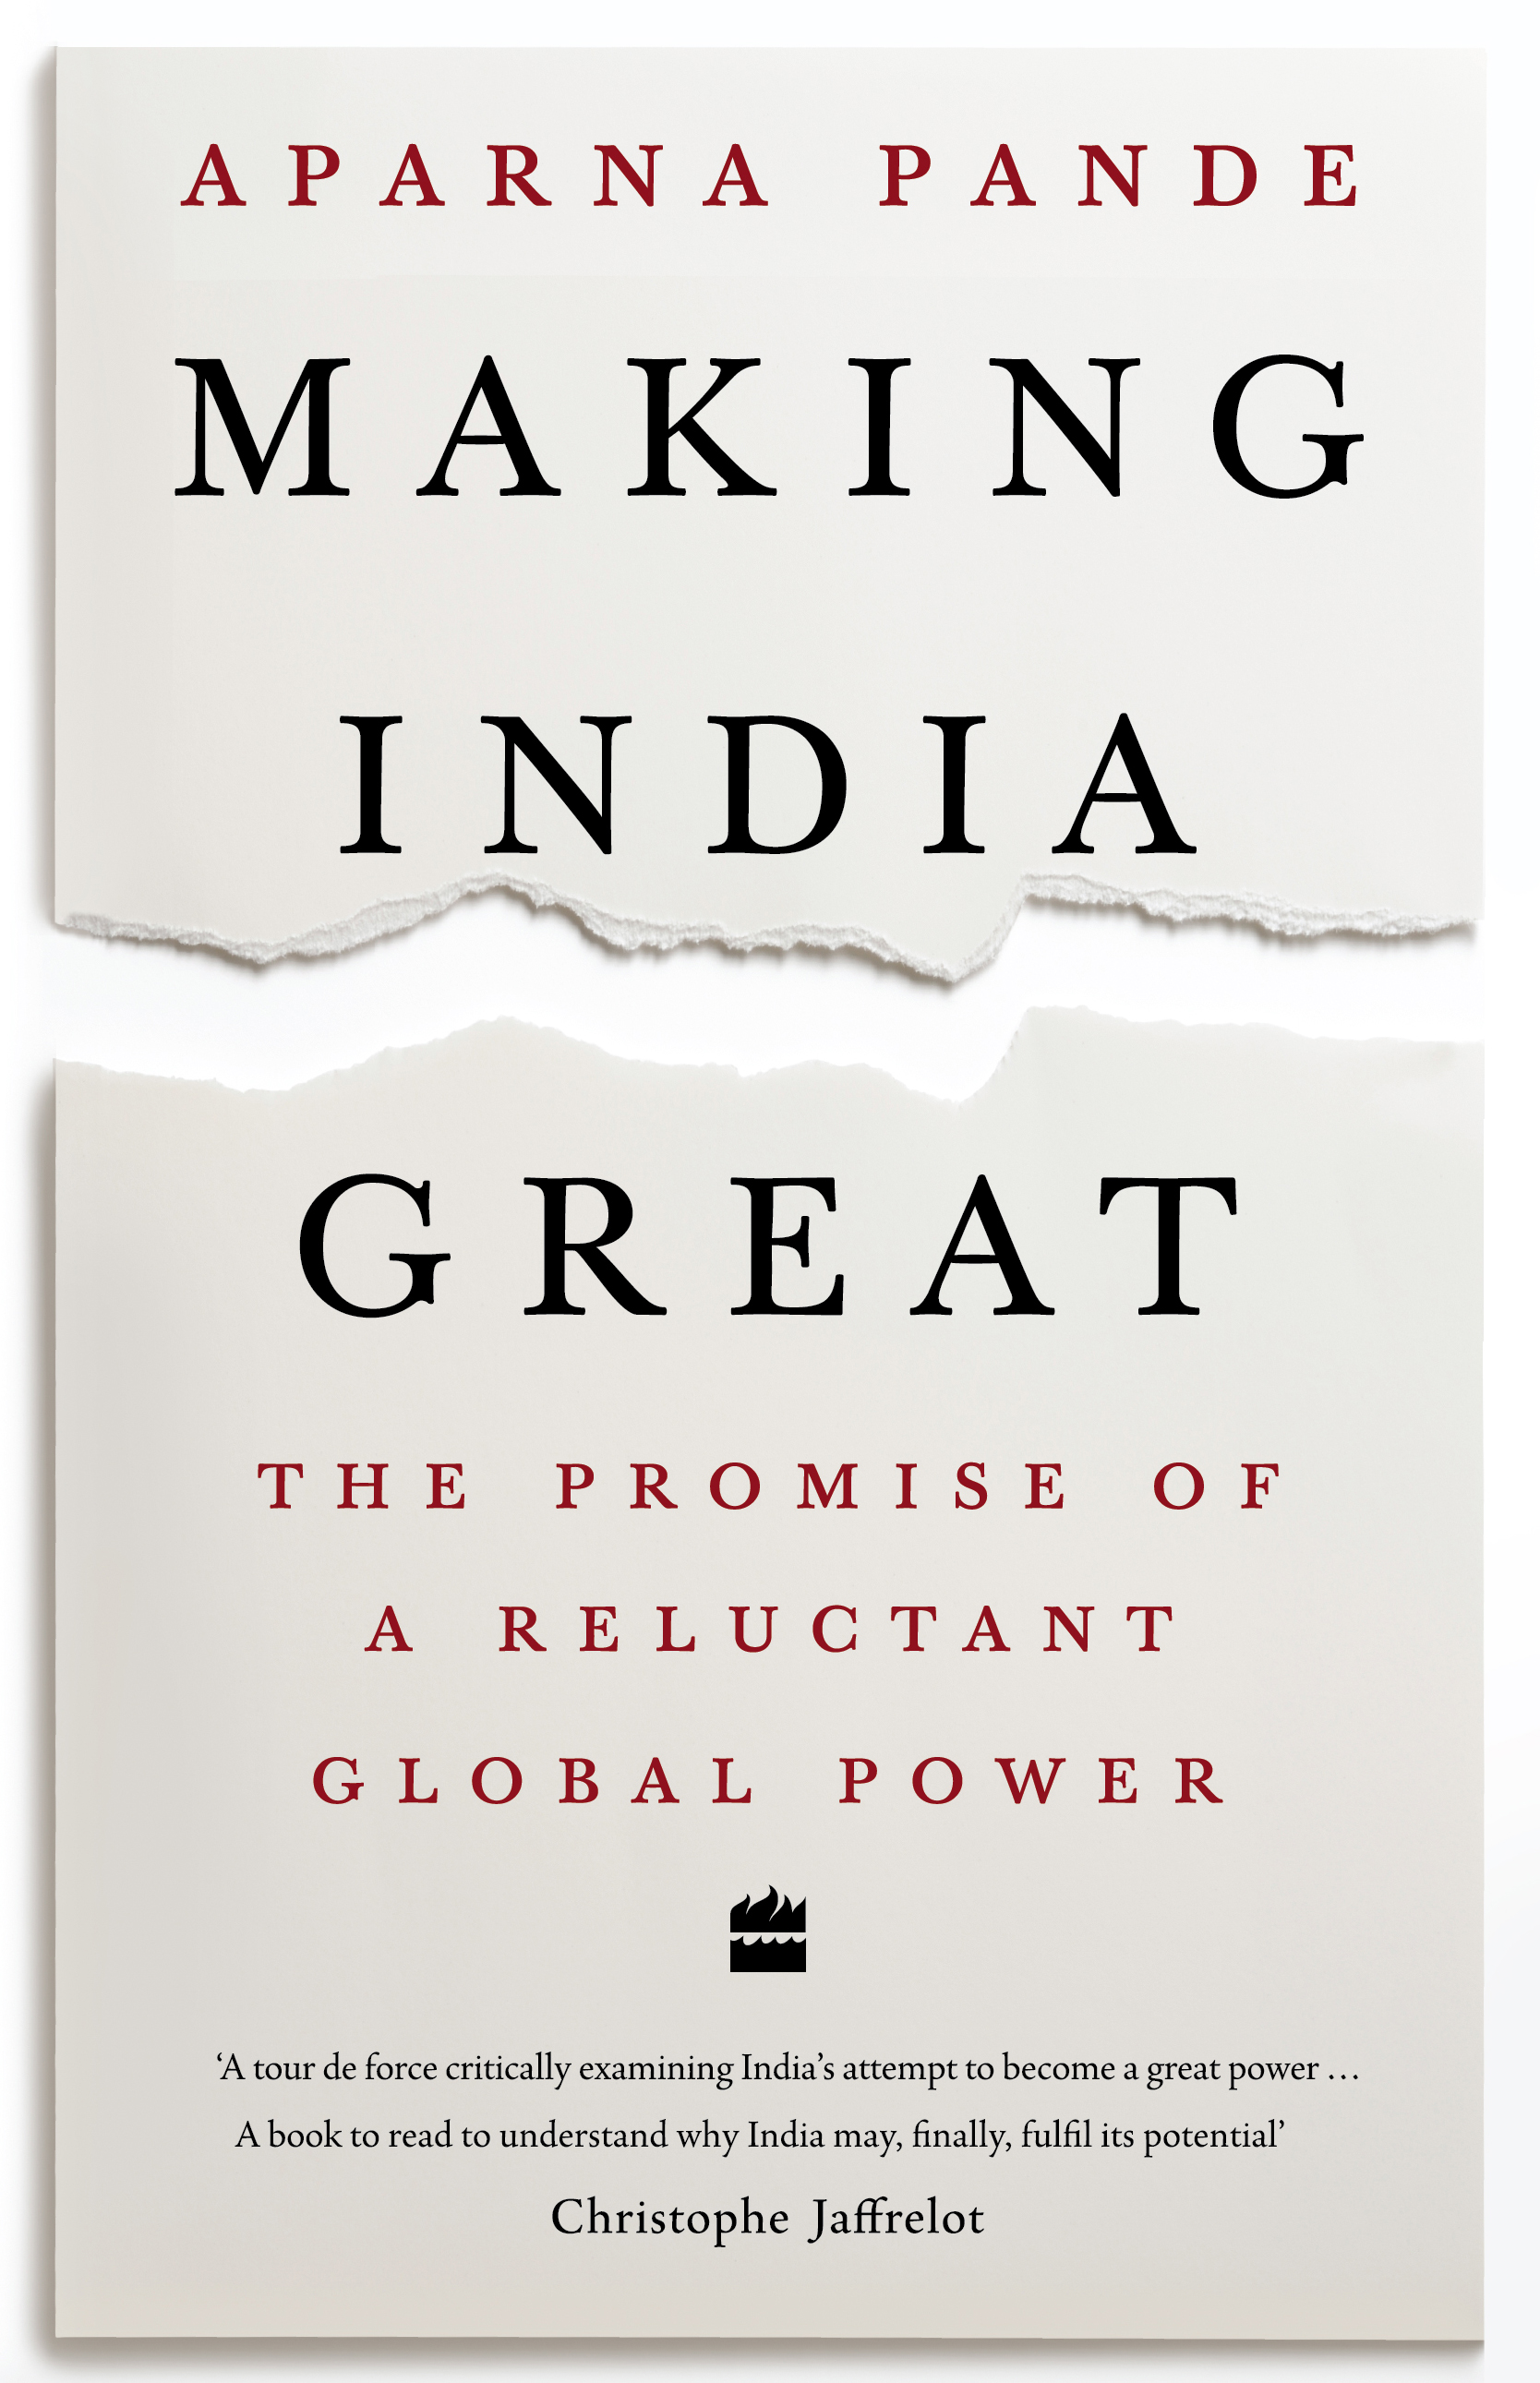 Making%20India%20Great-01.jpg